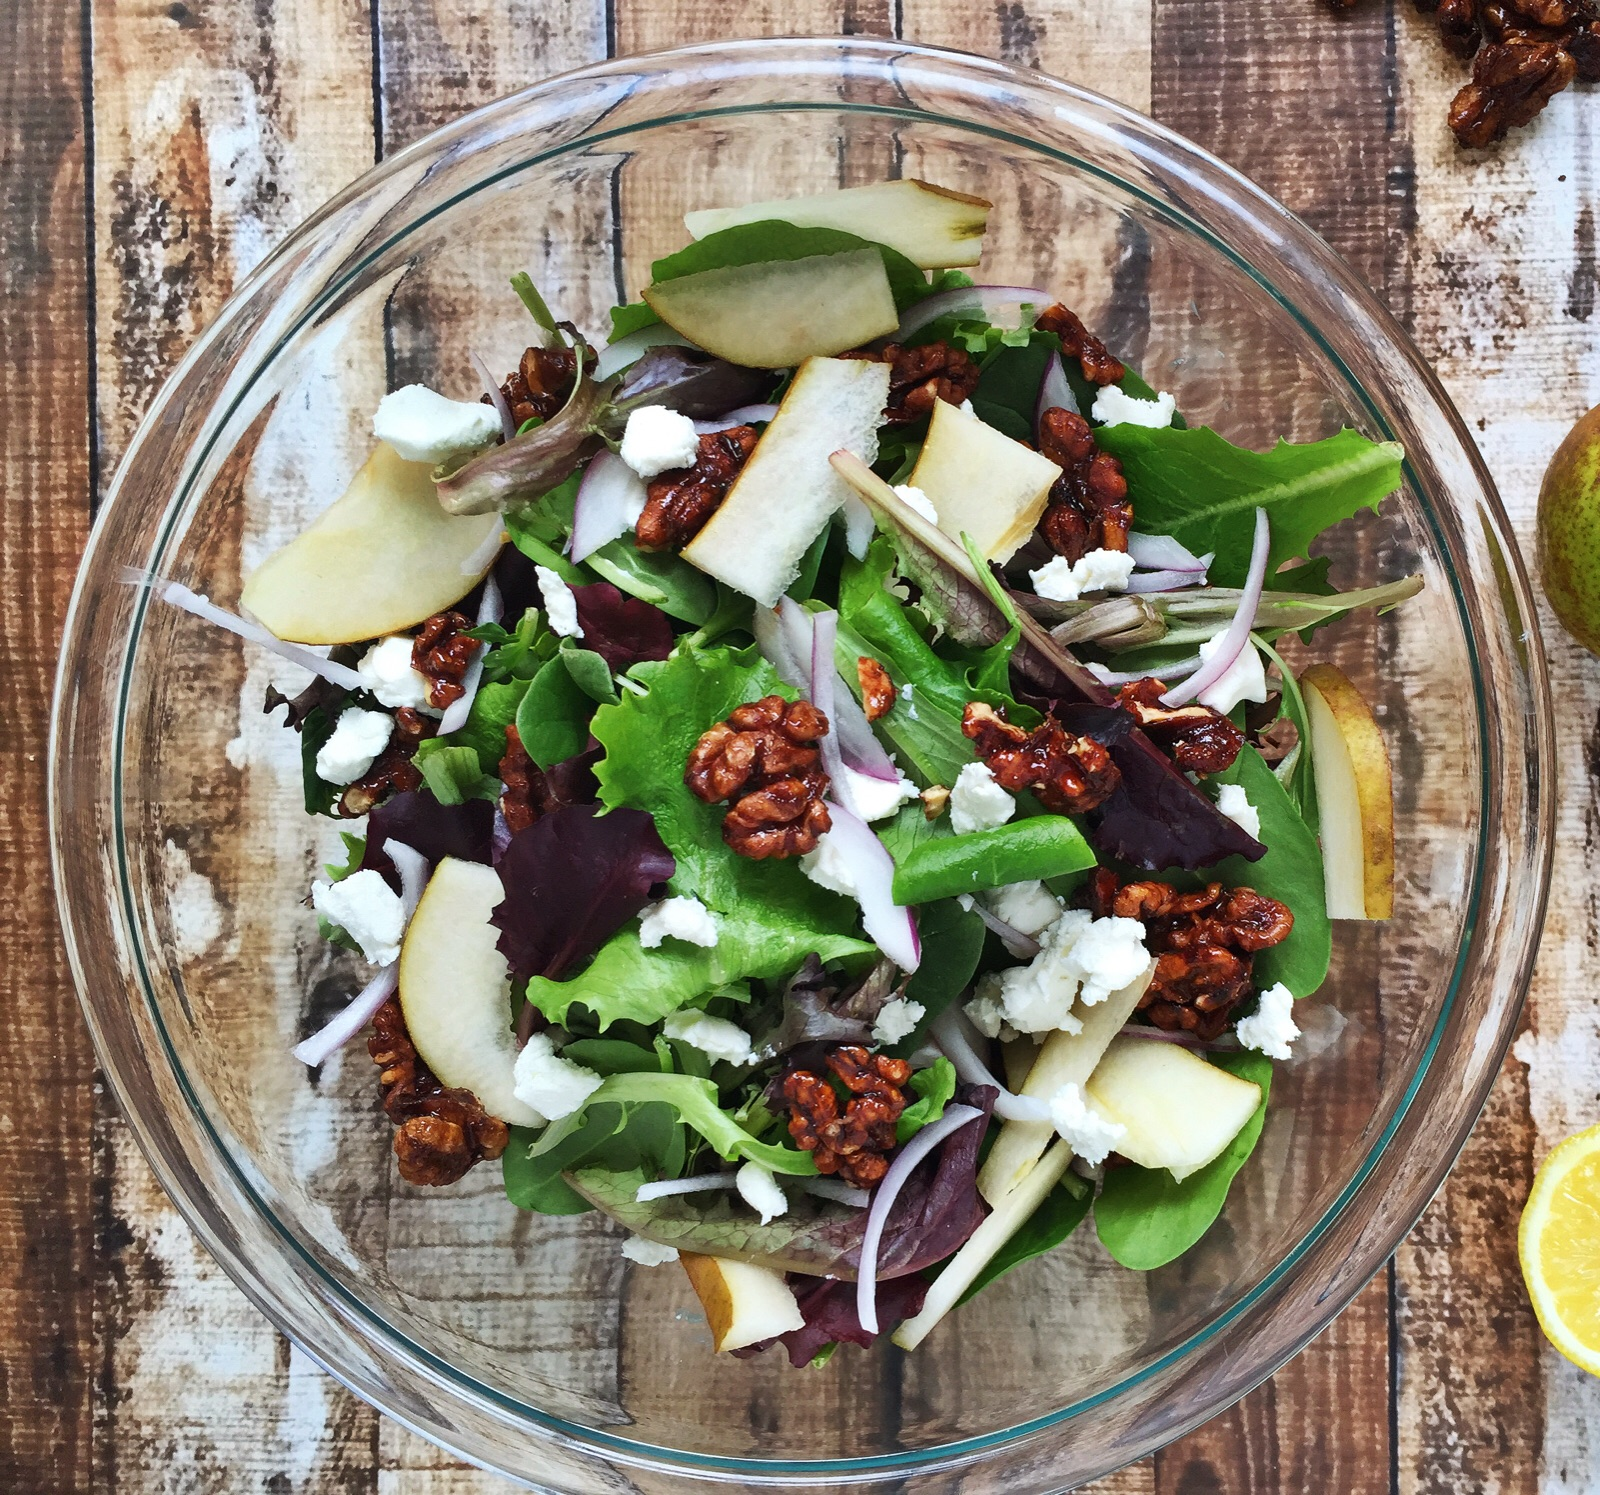 Mixed Greens with Pear, Goat Cheese, and Walnut